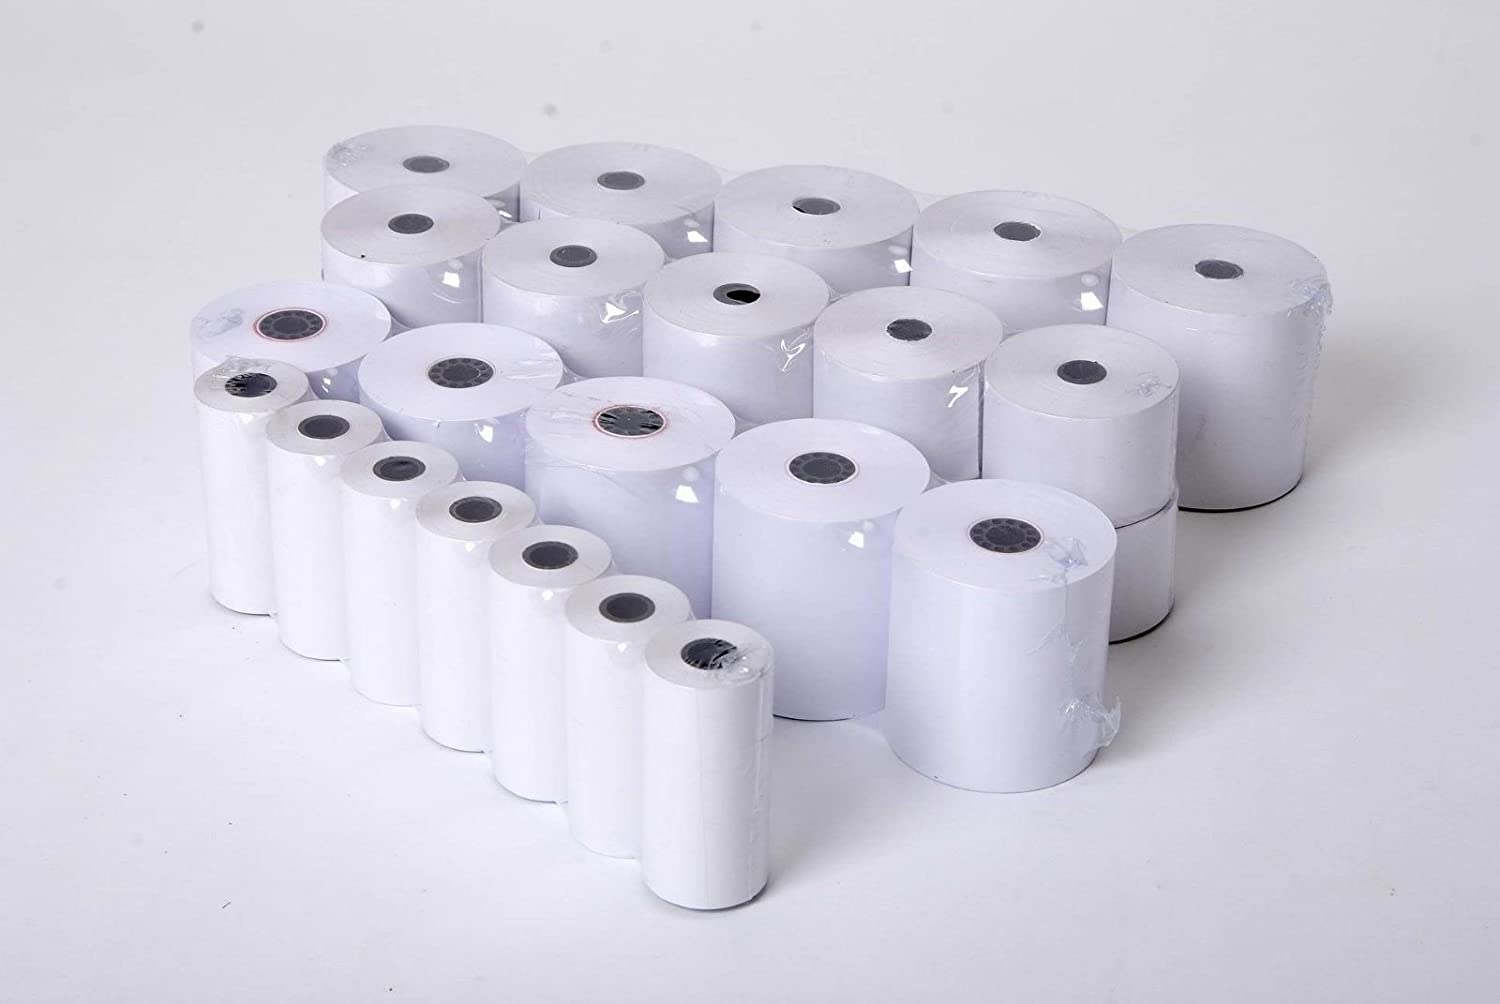 57mm X 50mm SMCO Thermal Paper Till Rolls 20 rolls